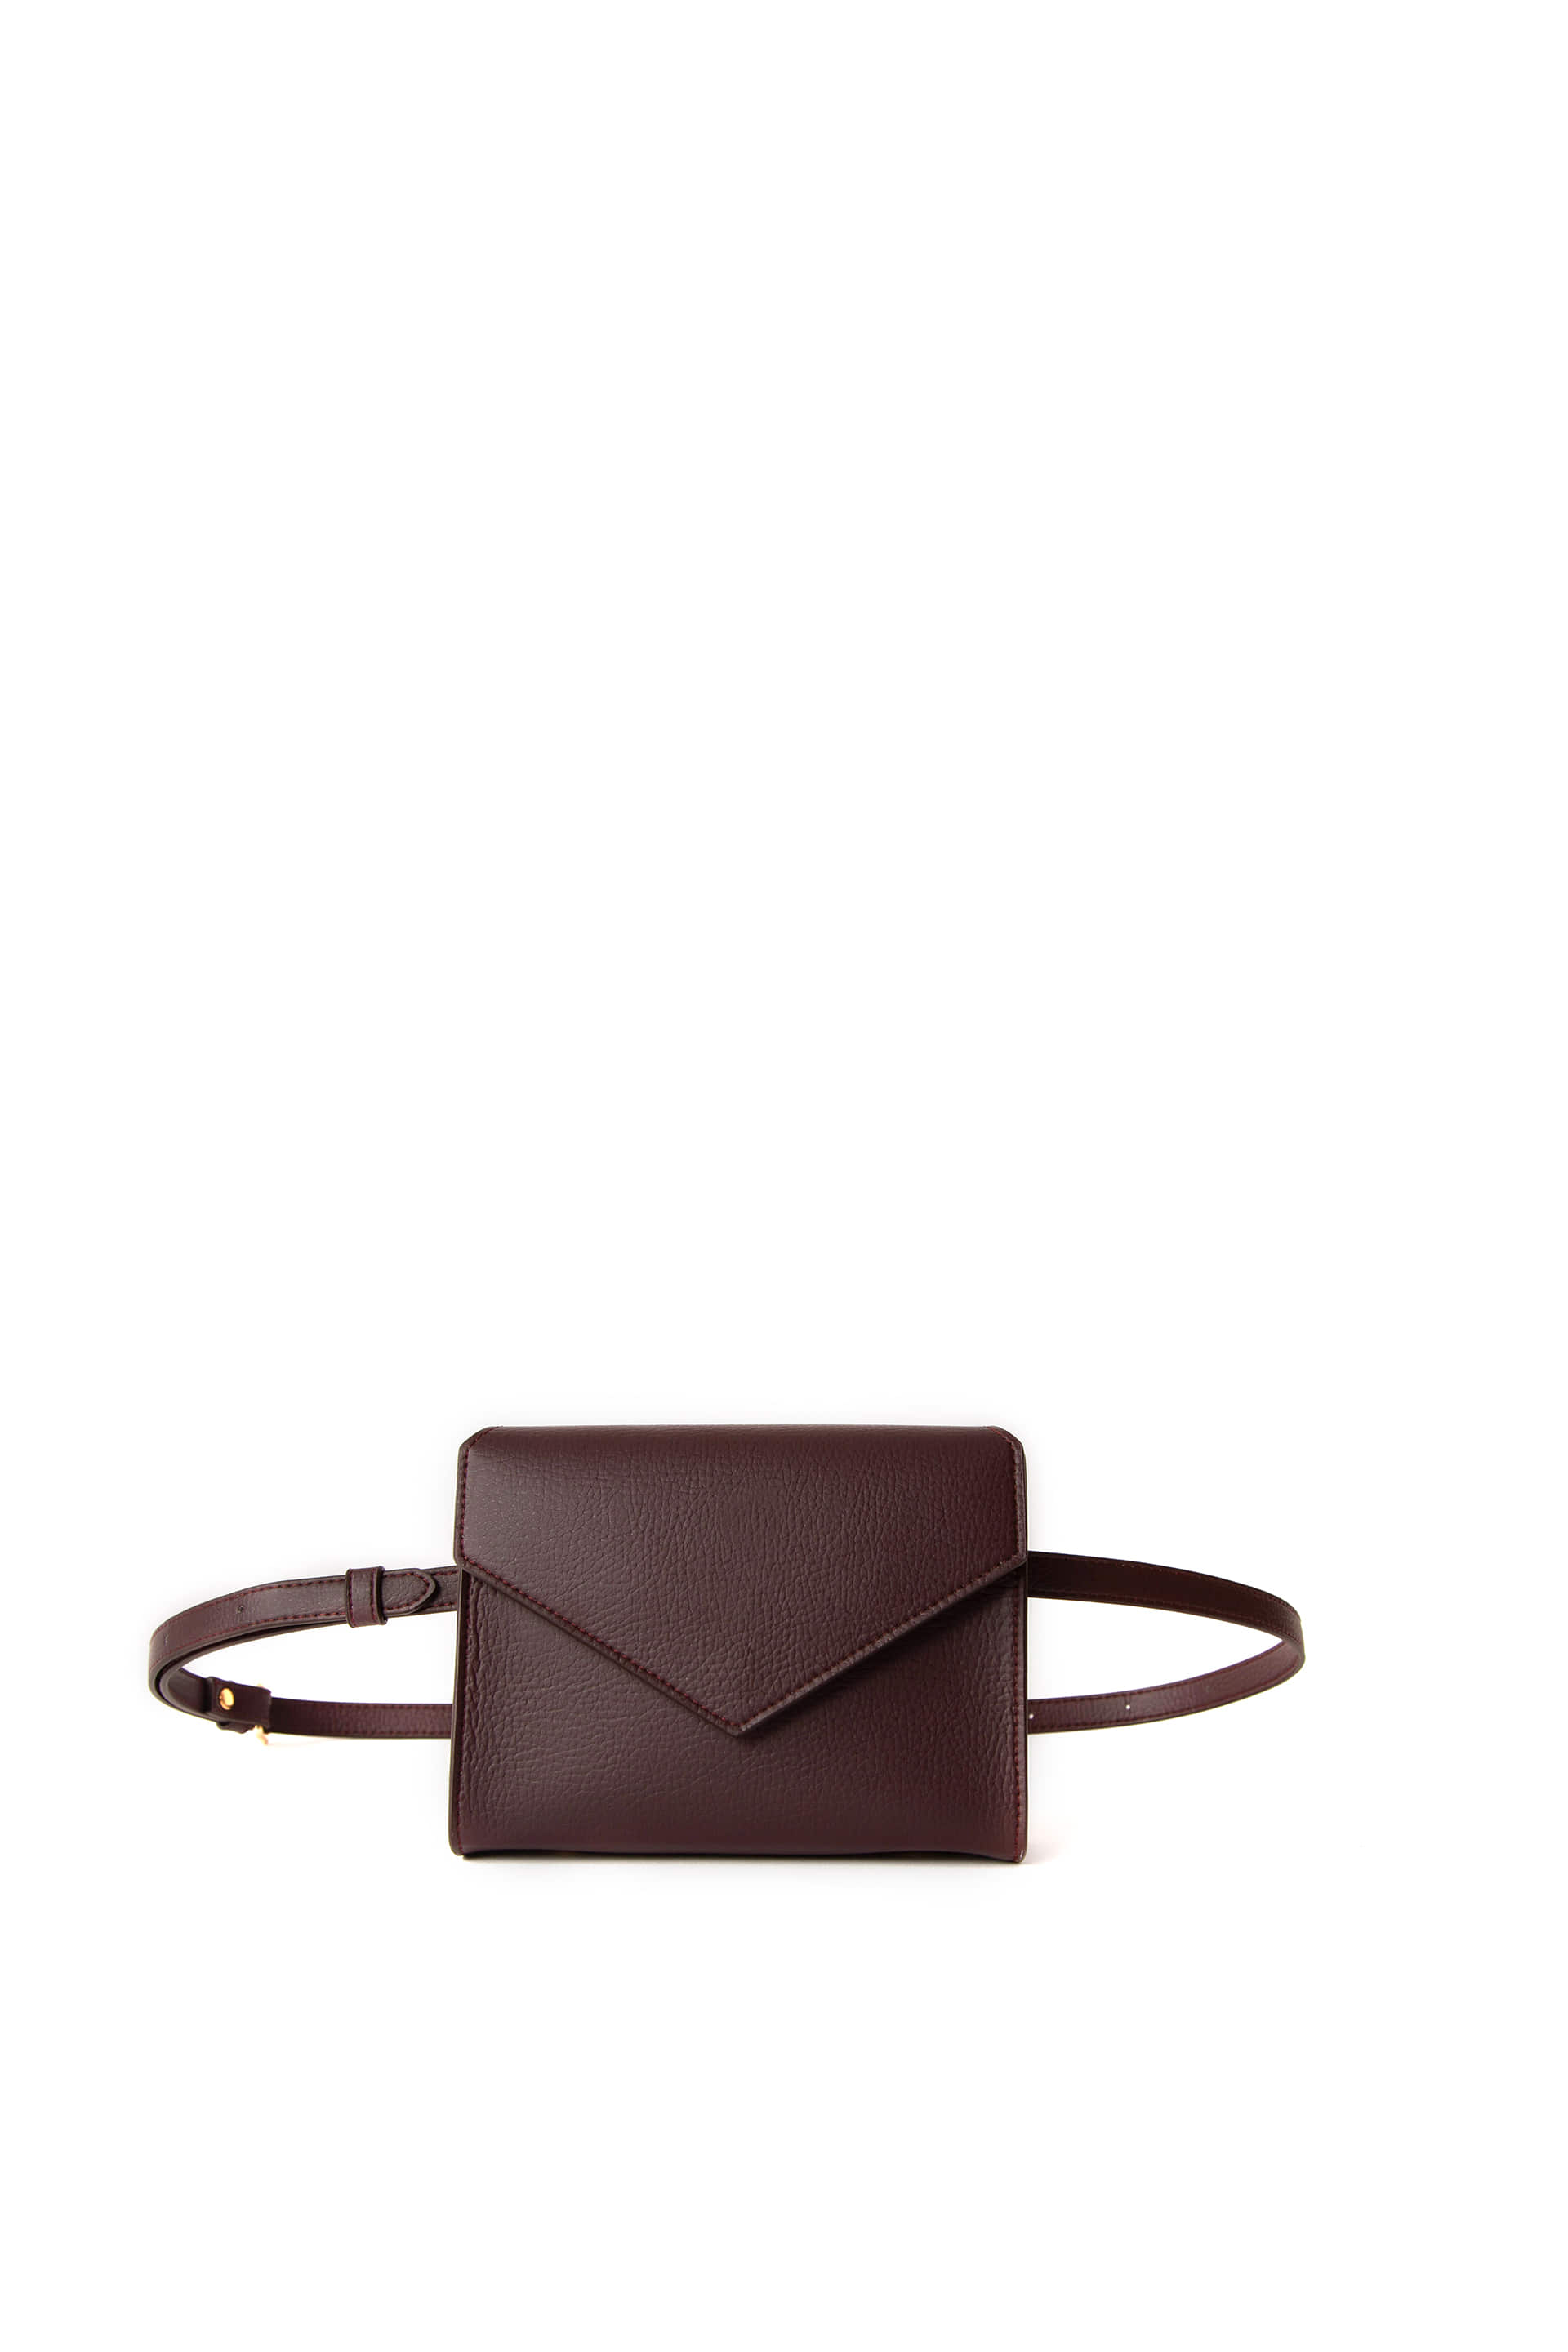 4-way BELT BAG 16 Dark Chocolate